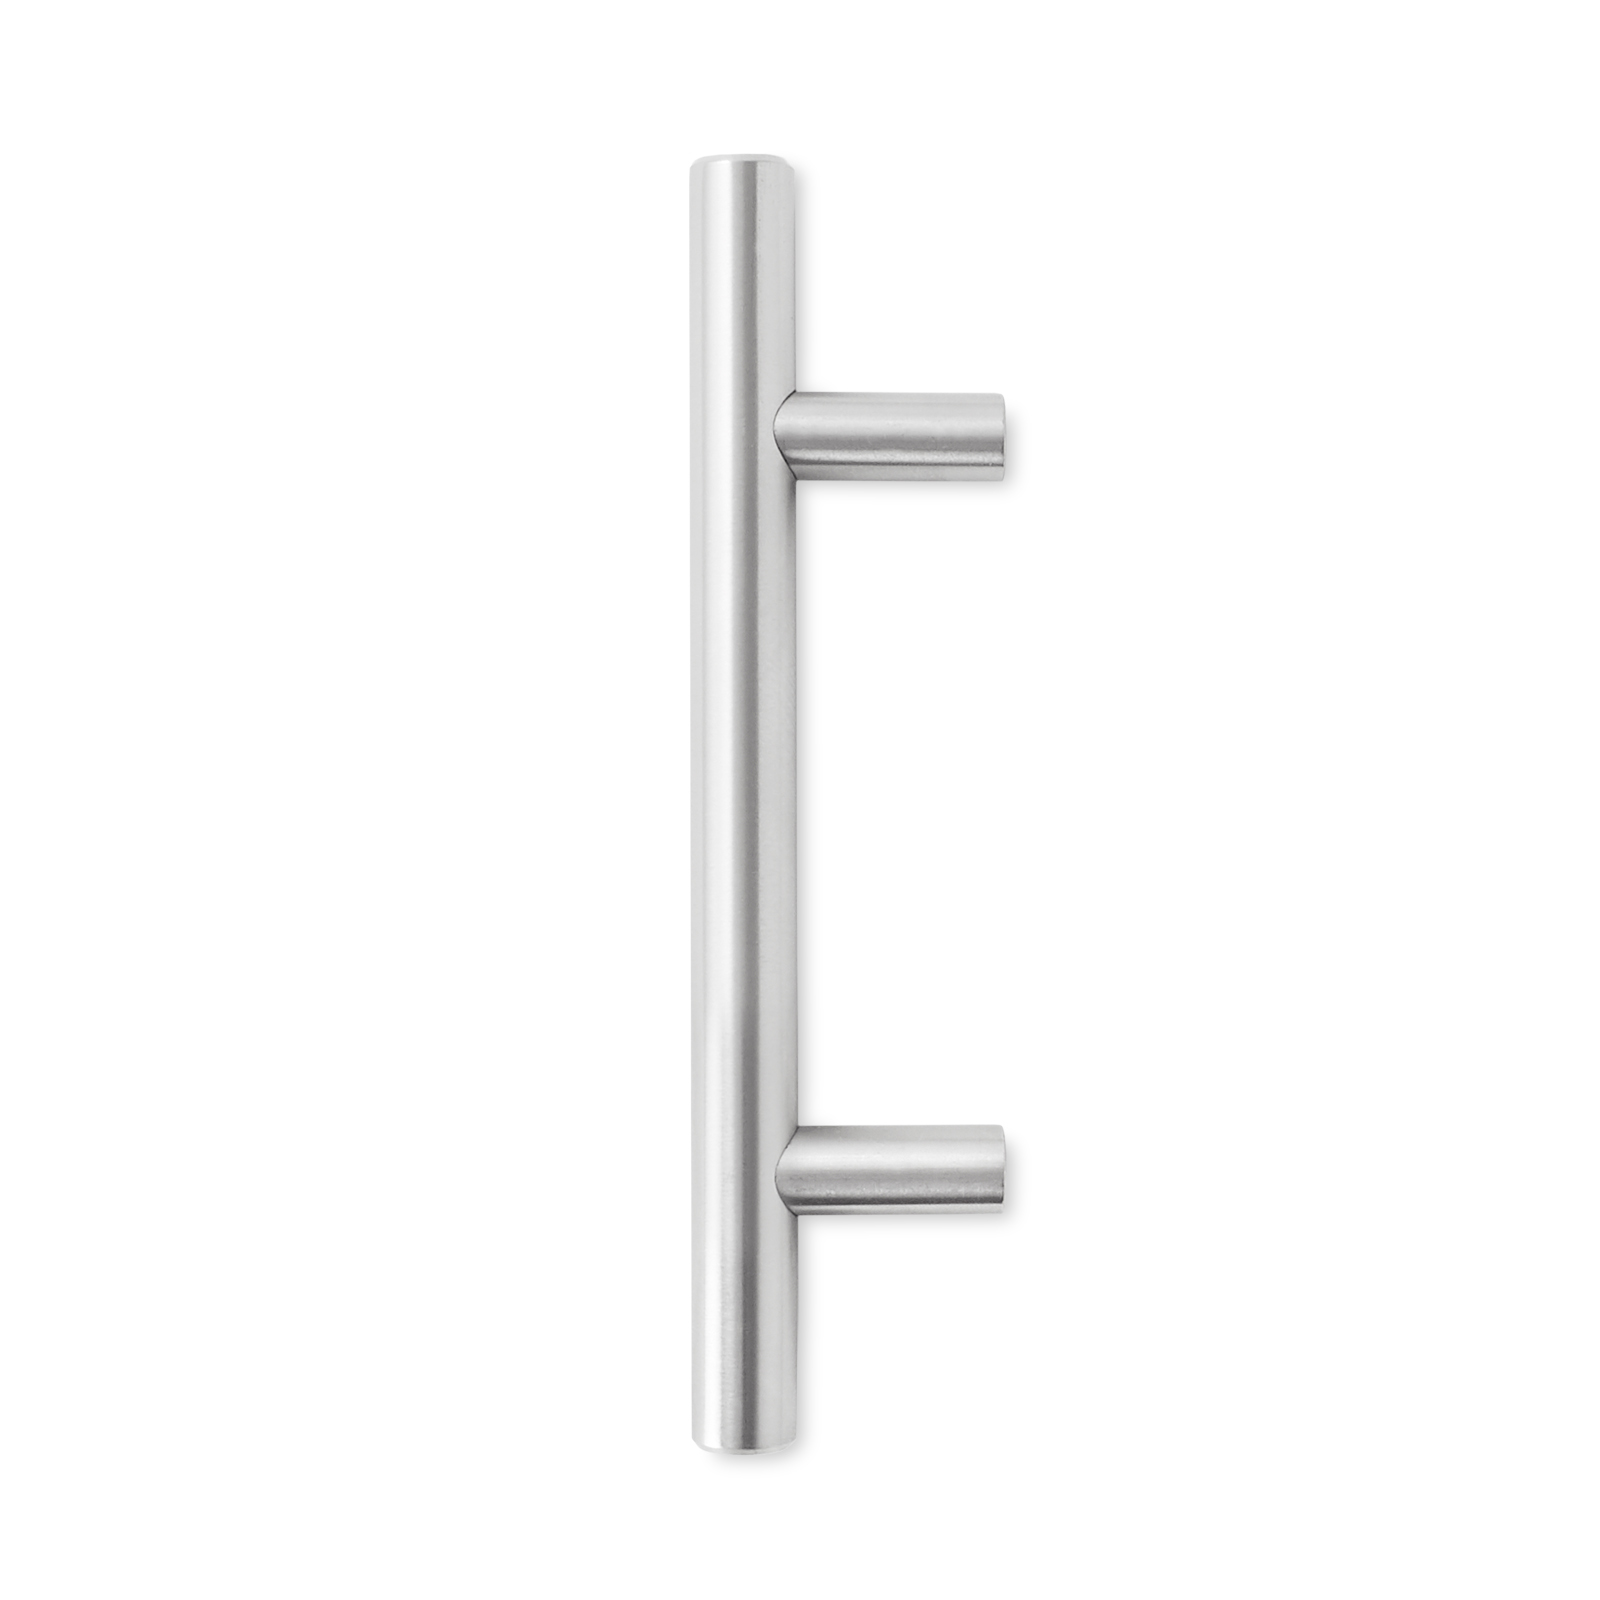 Solid Stainless Steel Kitchen Cabinet Hardware Handle Pull Brushed Nickel Ebay